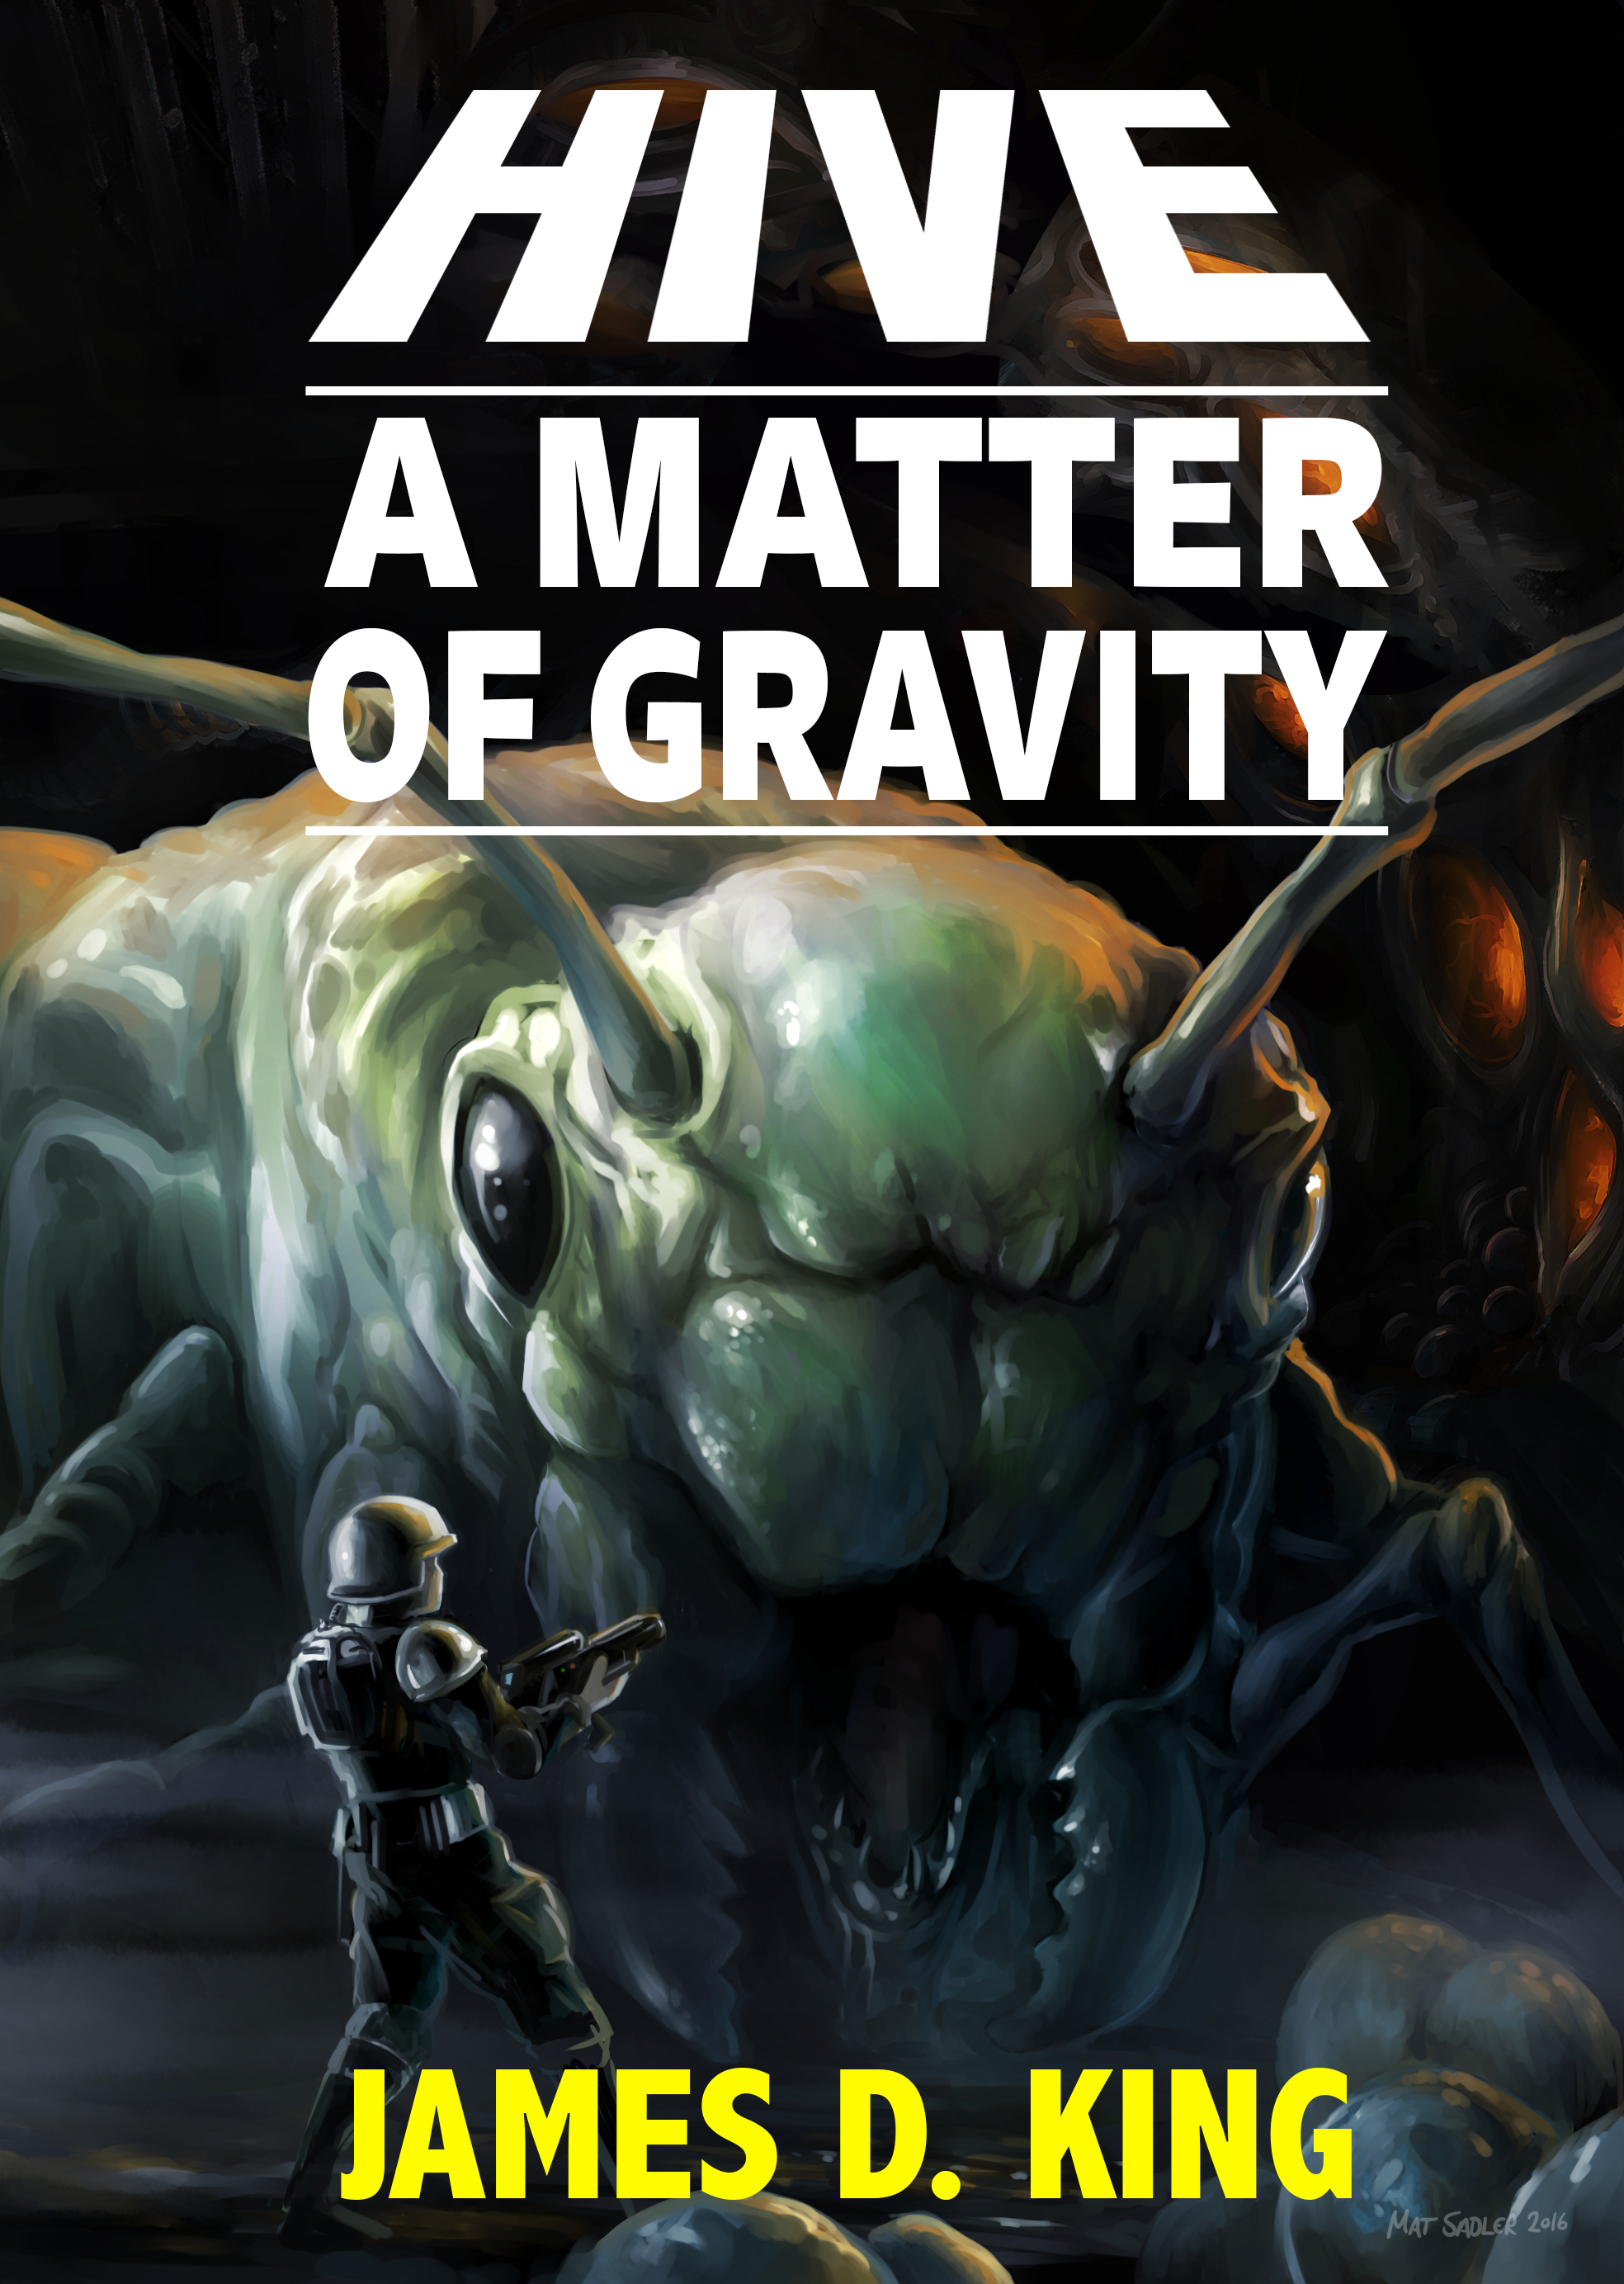 HIVE: A Matter of Gravity by James D. King  AVAILABLE in Ebook format at the  Aois21 Marketplace